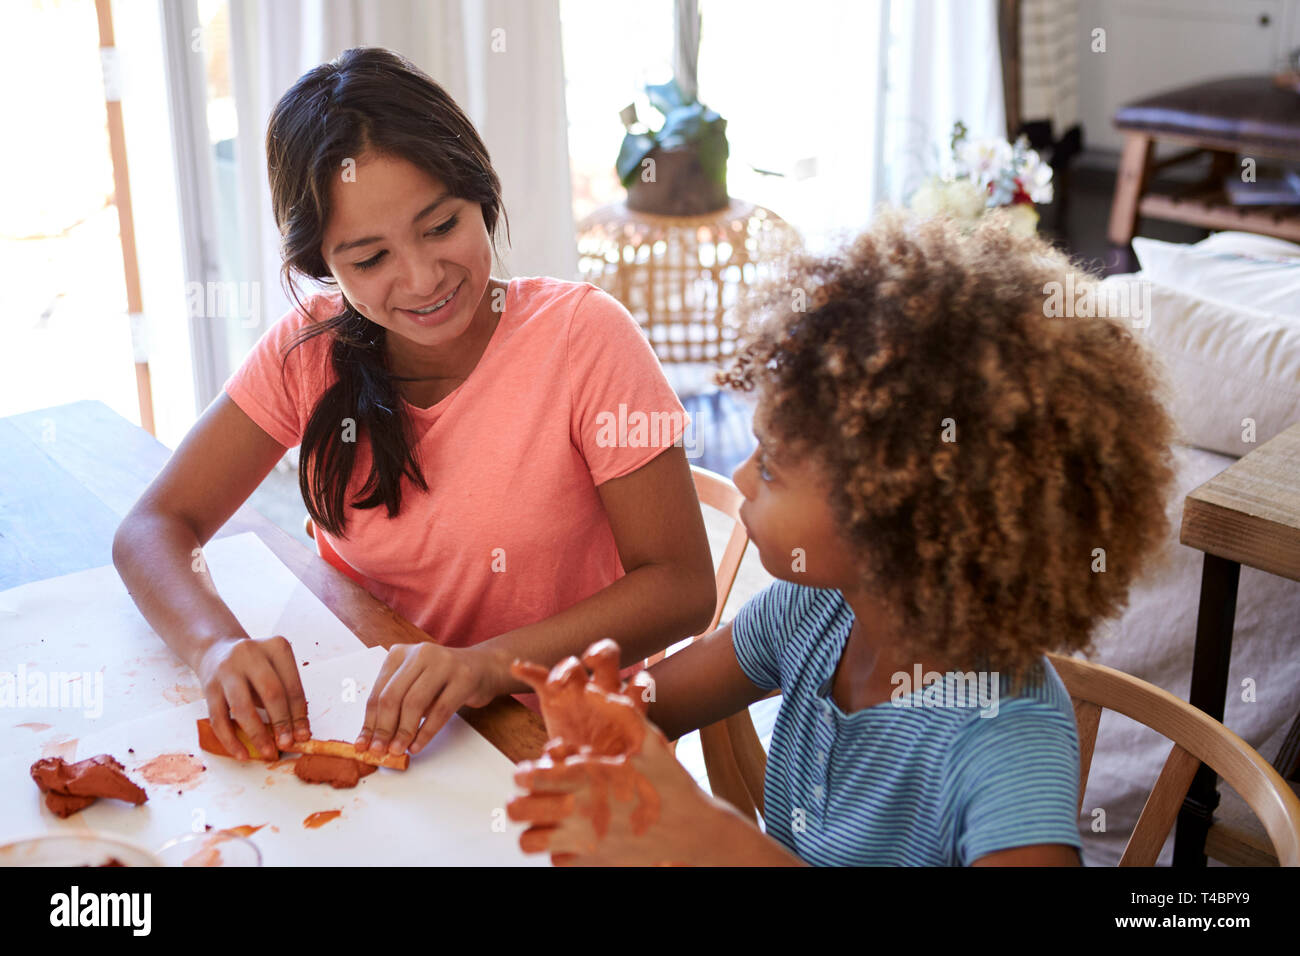 Two young teen and pre-teen girlfriends sitting at a table at home playing with modelling clay, close up, elevated view - Stock Image